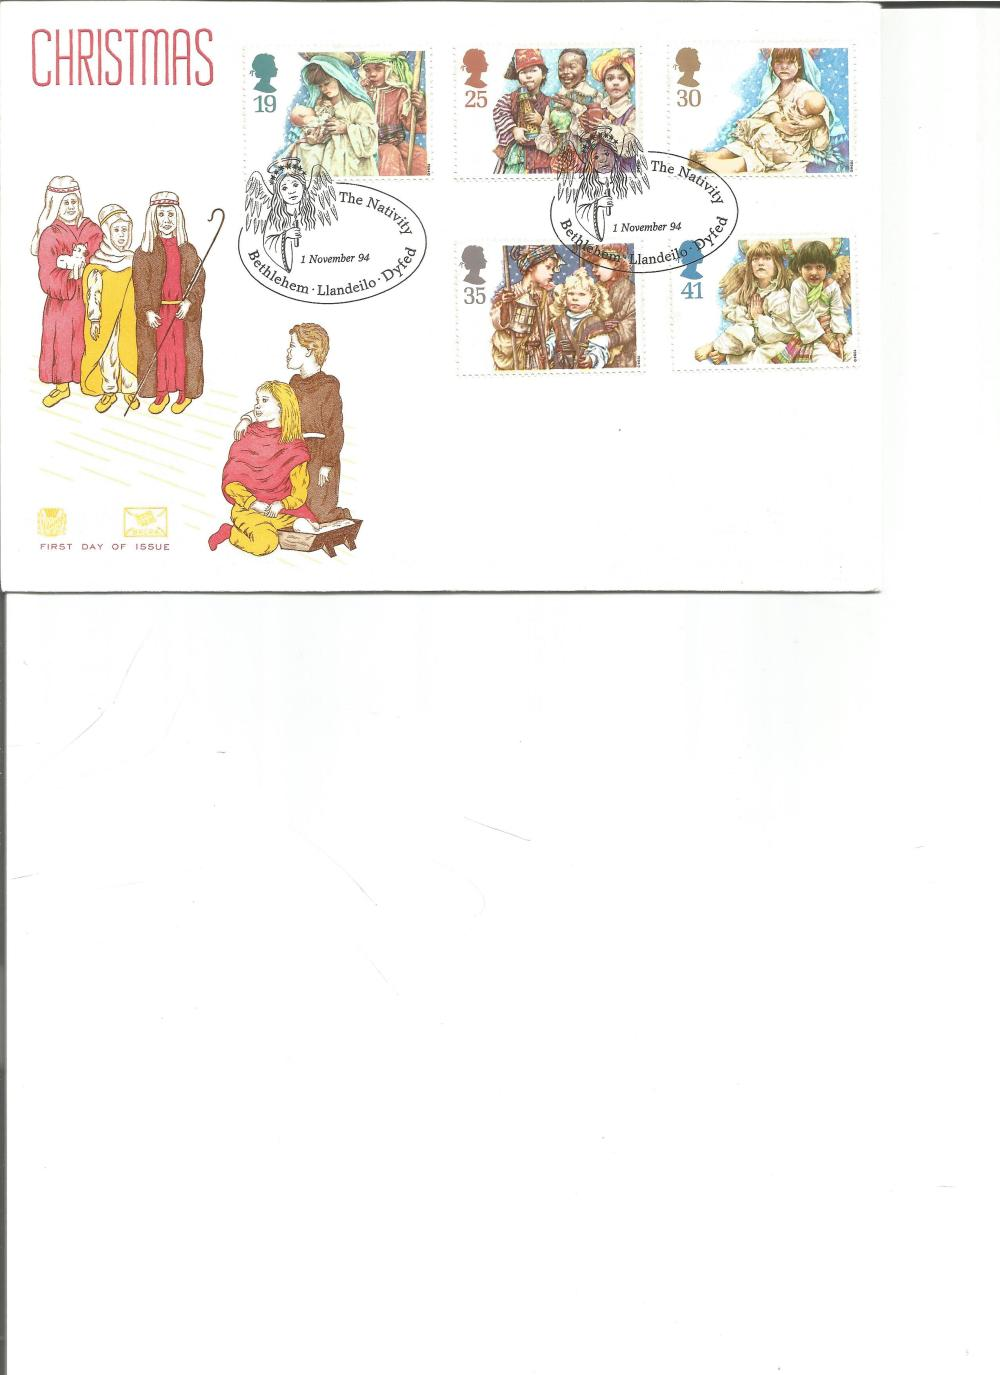 FDC Christmas c/w set of five commemorative stamps double PM The Nativity 1 November 94 Bethlehem,